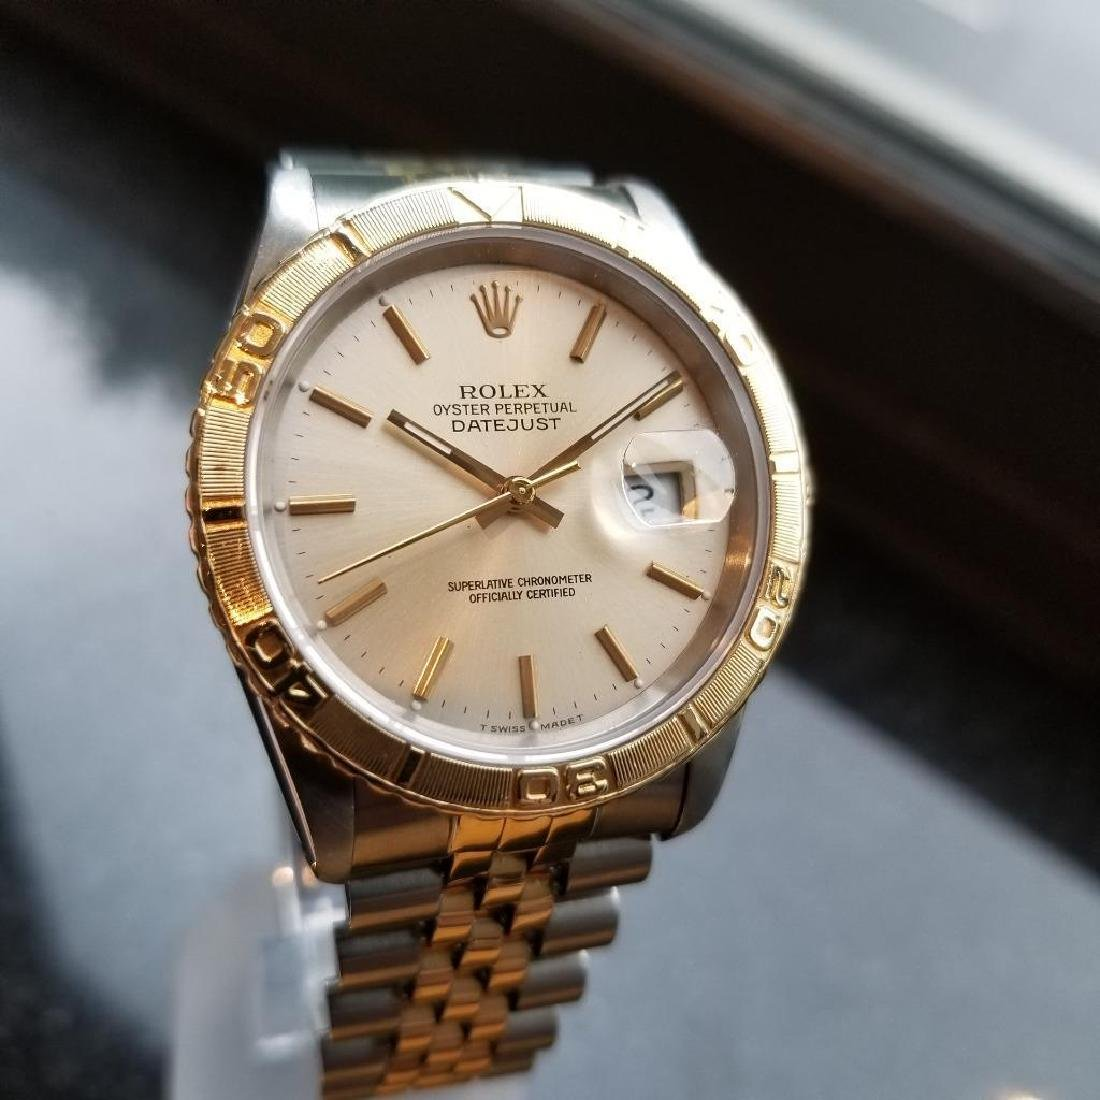 Rolex 1990 Oyster 162633 Automatic Datejust Men's Gold - 2